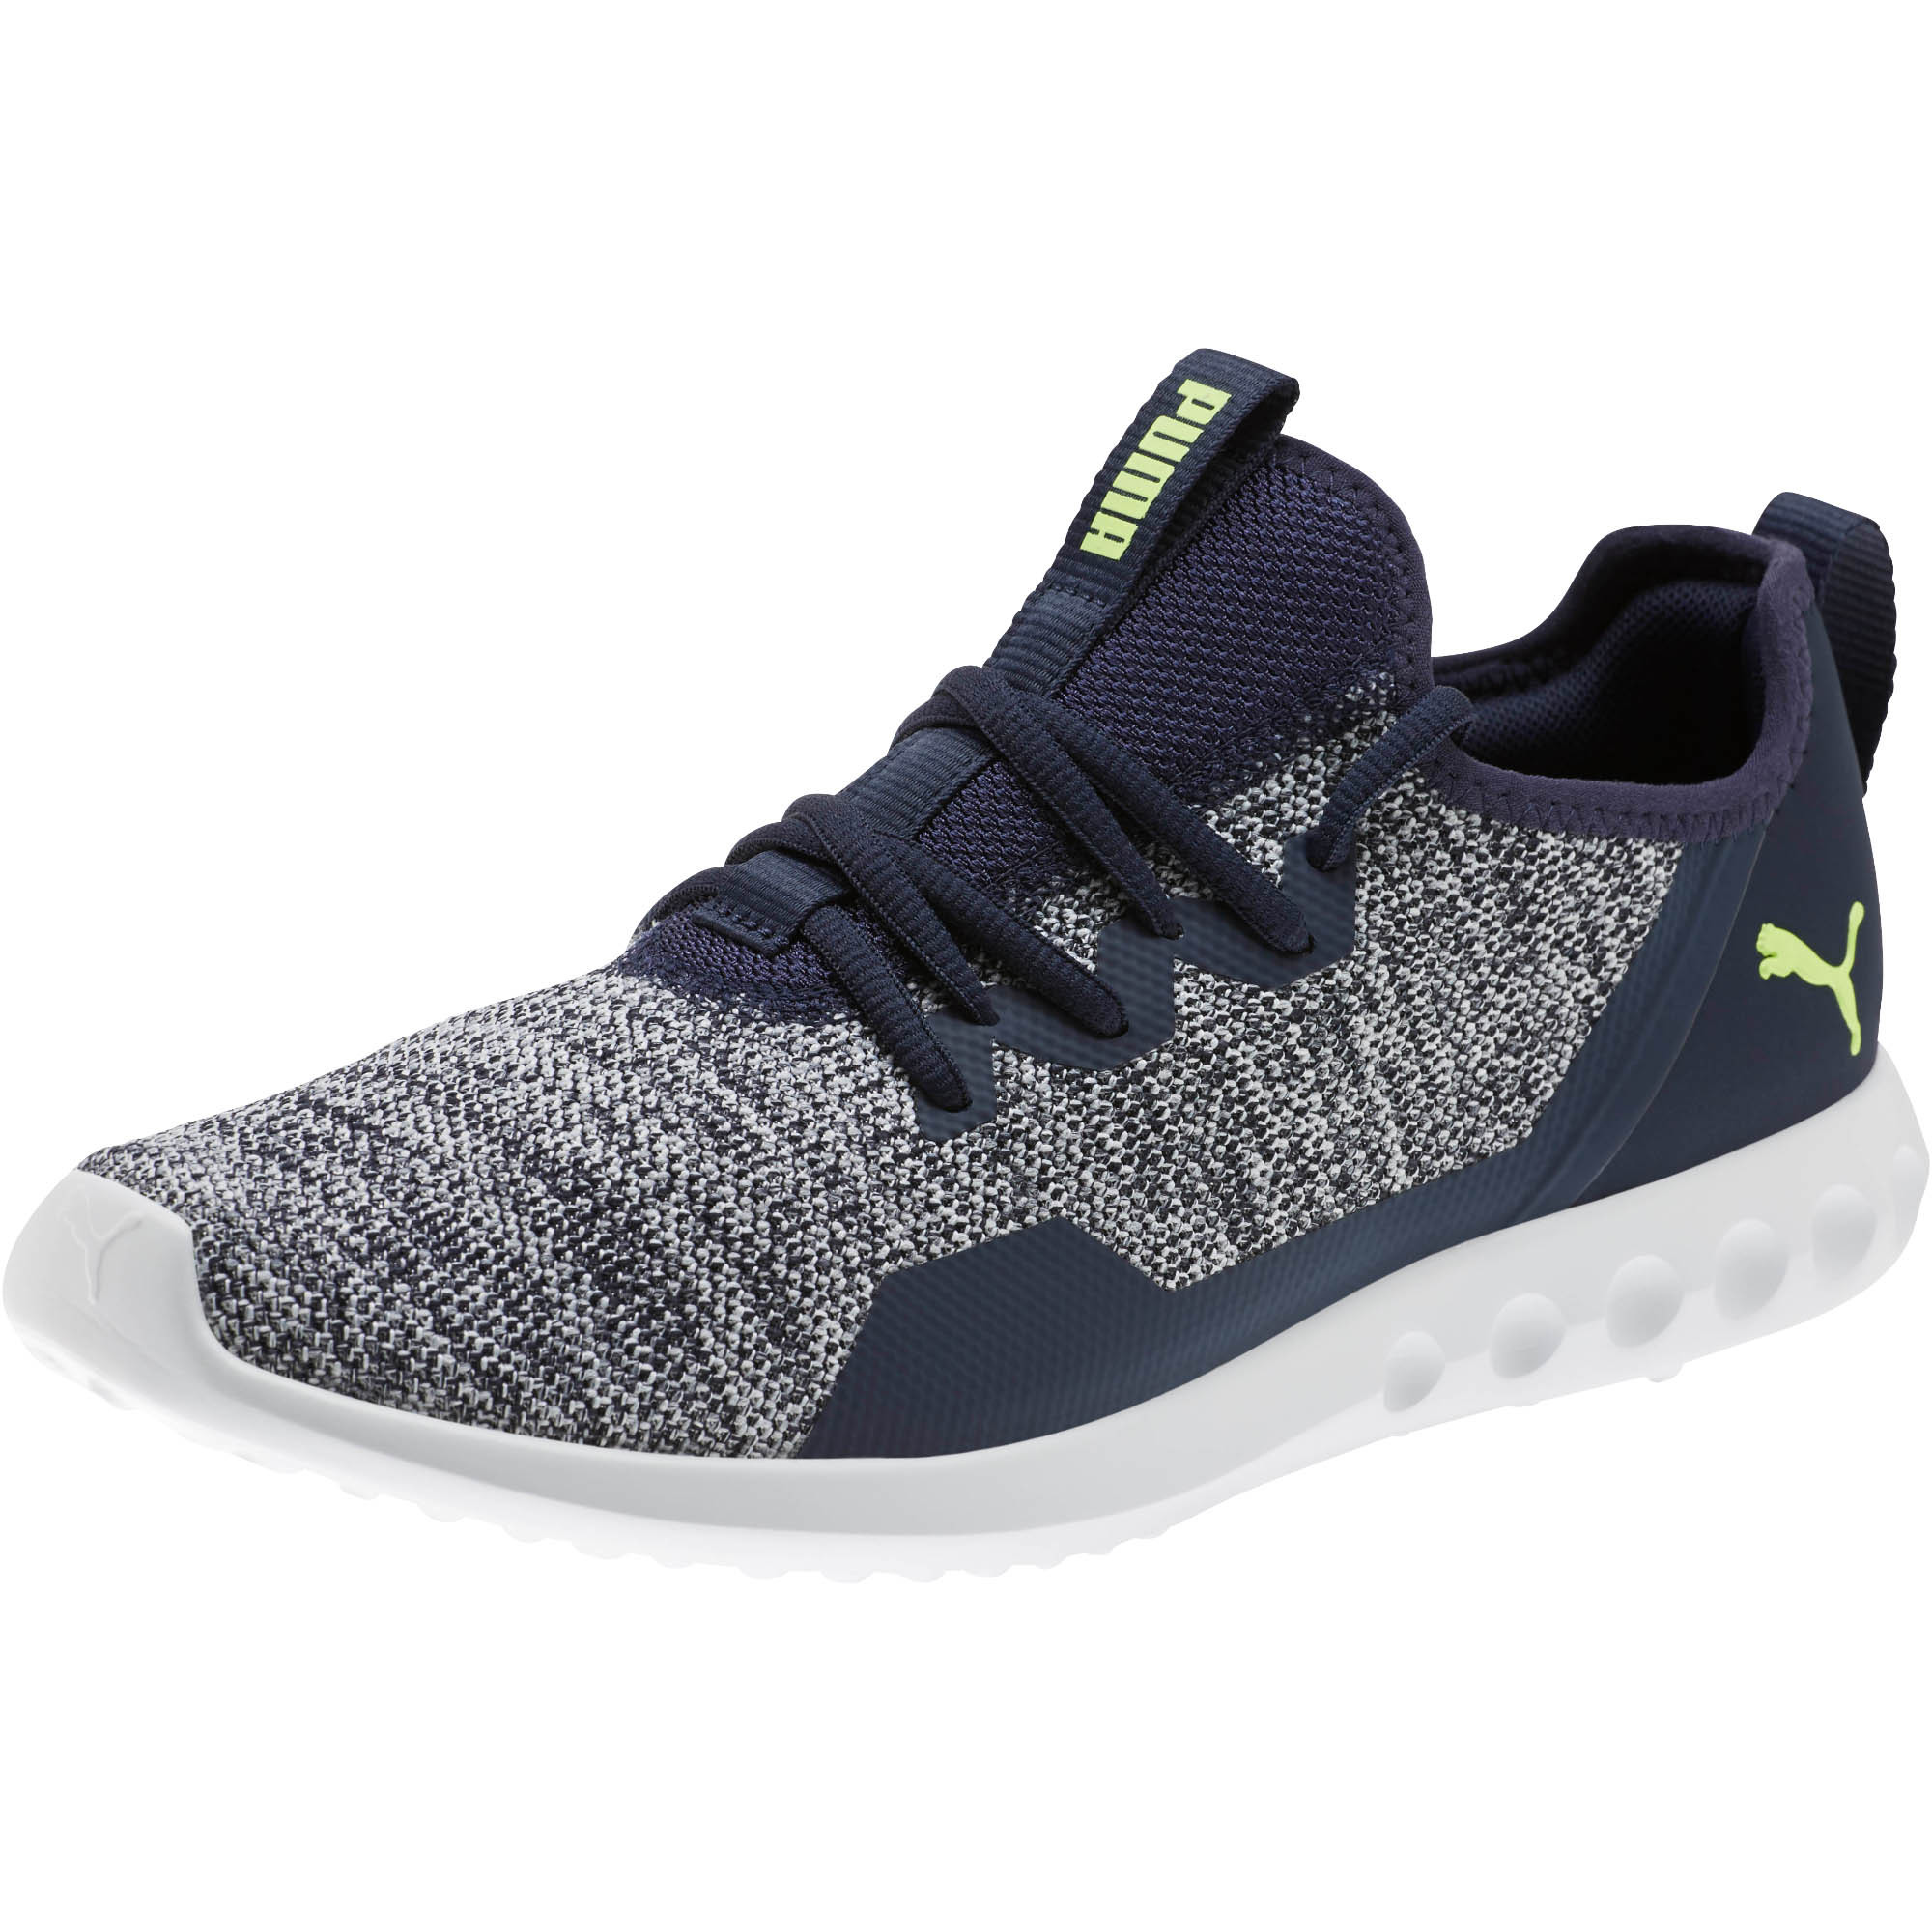 PUMA-Carson-2-X-Knit-Men-039-s-Running-Shoes-Men-Shoe-Running thumbnail 26